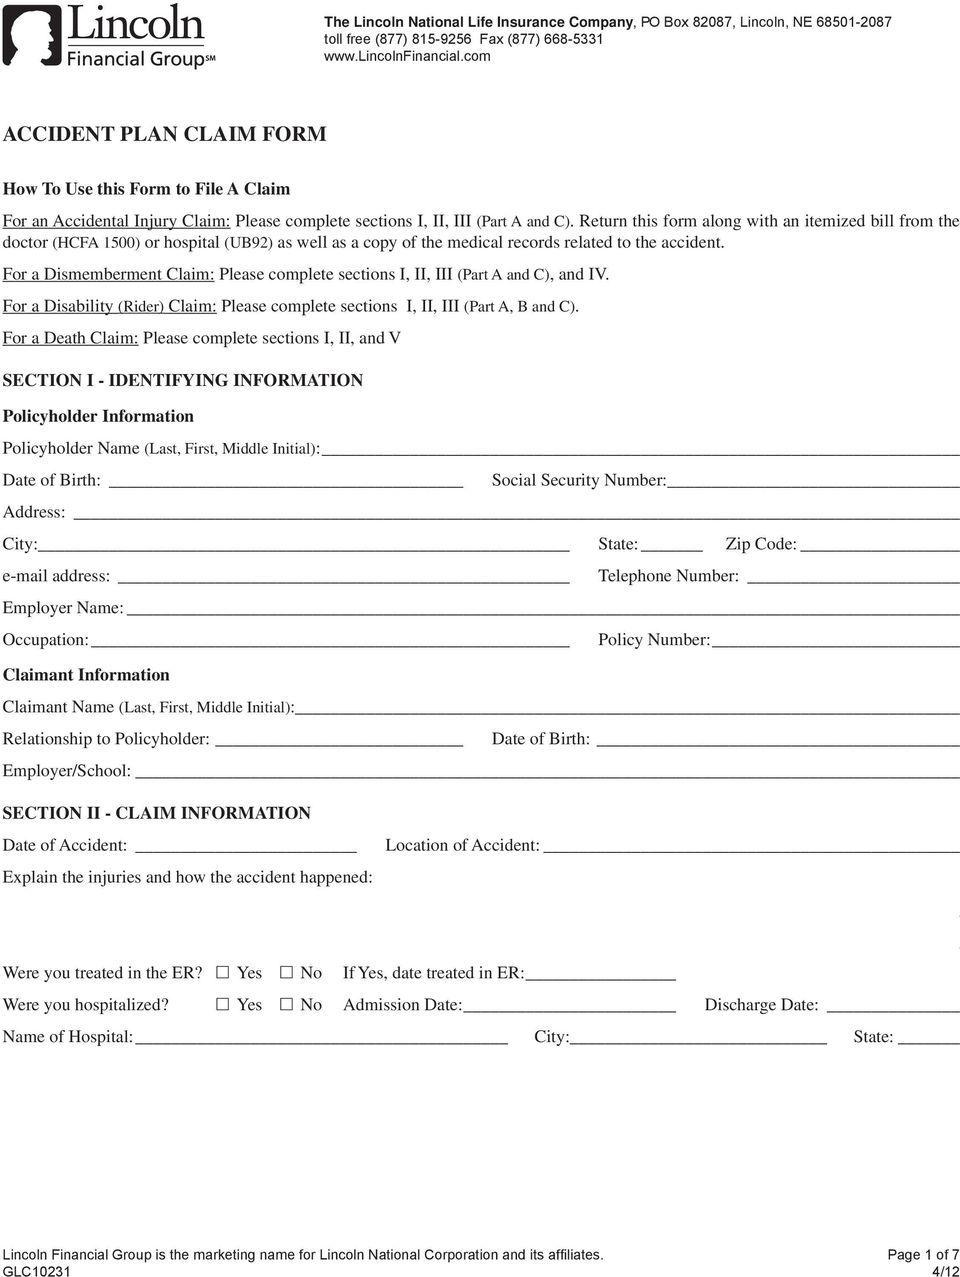 Return this form along with an itemized bill from the doctor (HCFA 1500) or hospital (UB92) as well as a copy of the medical records related to the accident.